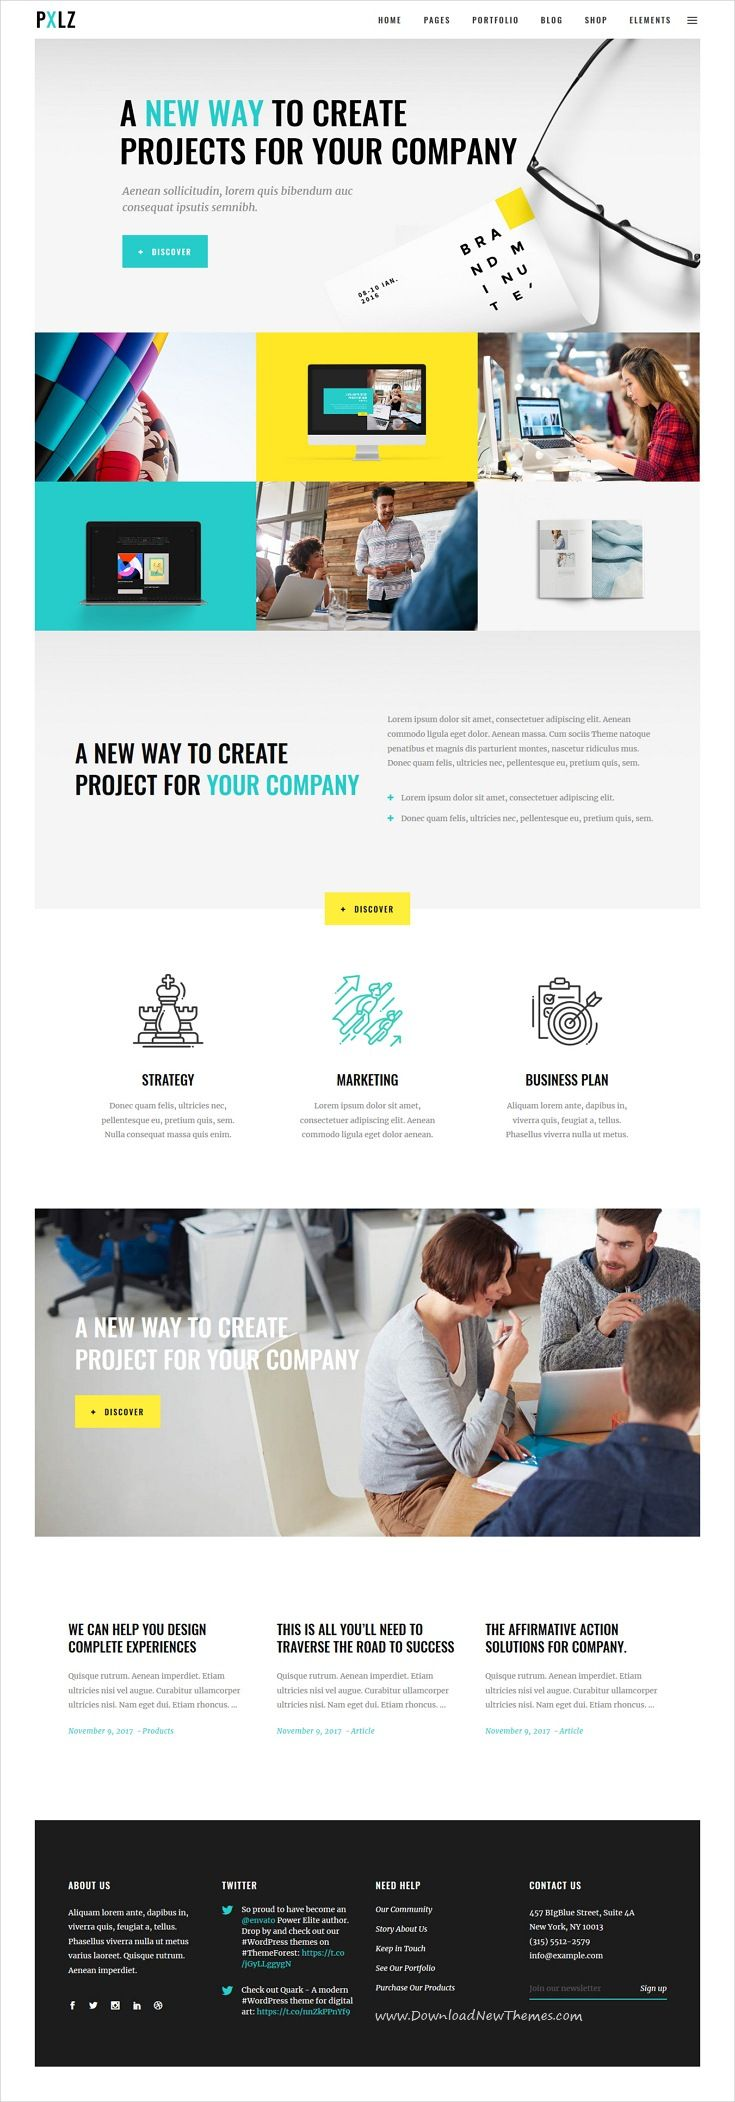 Pxlz Is Clean And Modern Design Responsive Multipurpose Wordpress Theme For Creative Designers Ag Creative Design Agency Web Layout Design Web Design Agency